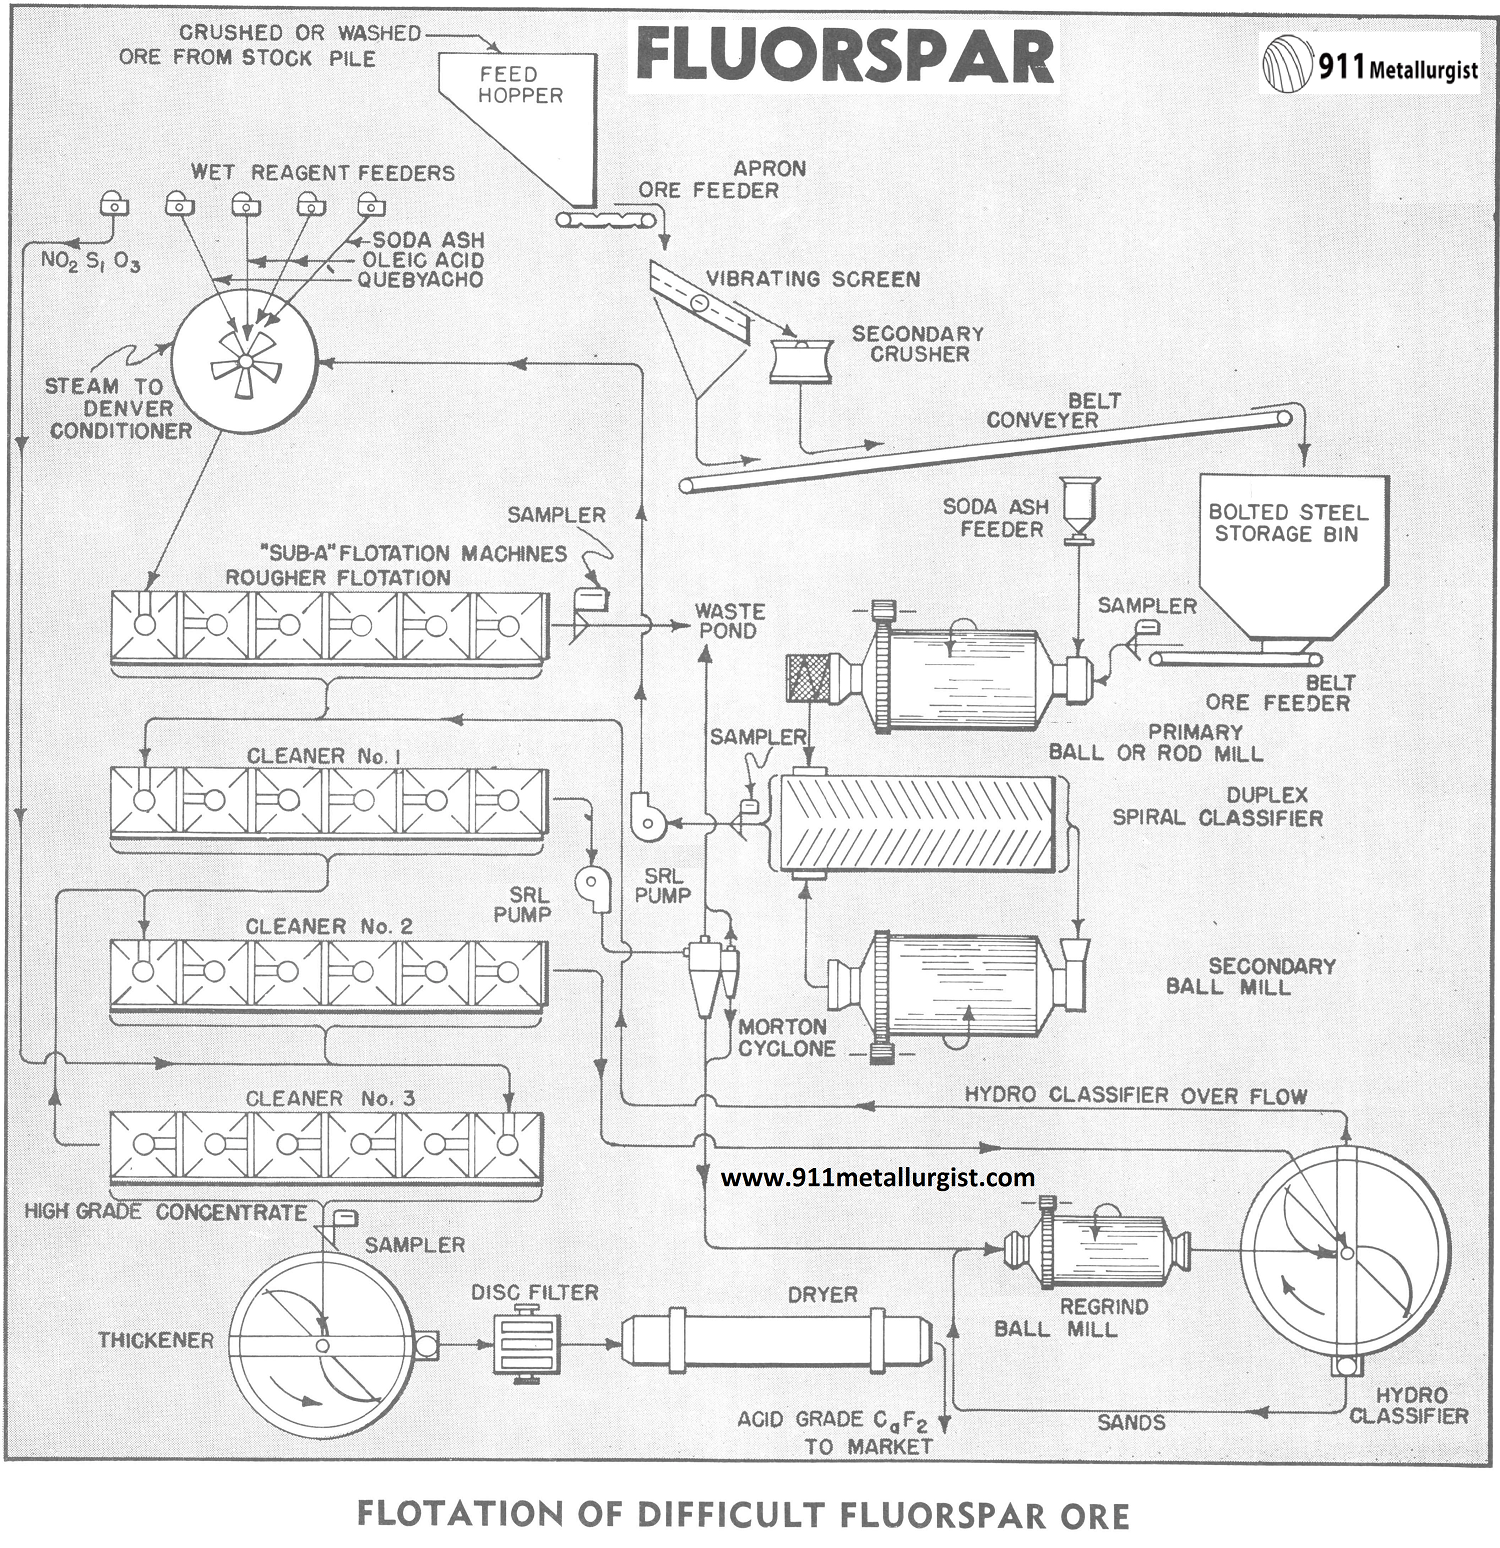 FLOTATION OF DIFFICULT FLUORSPAR ORE